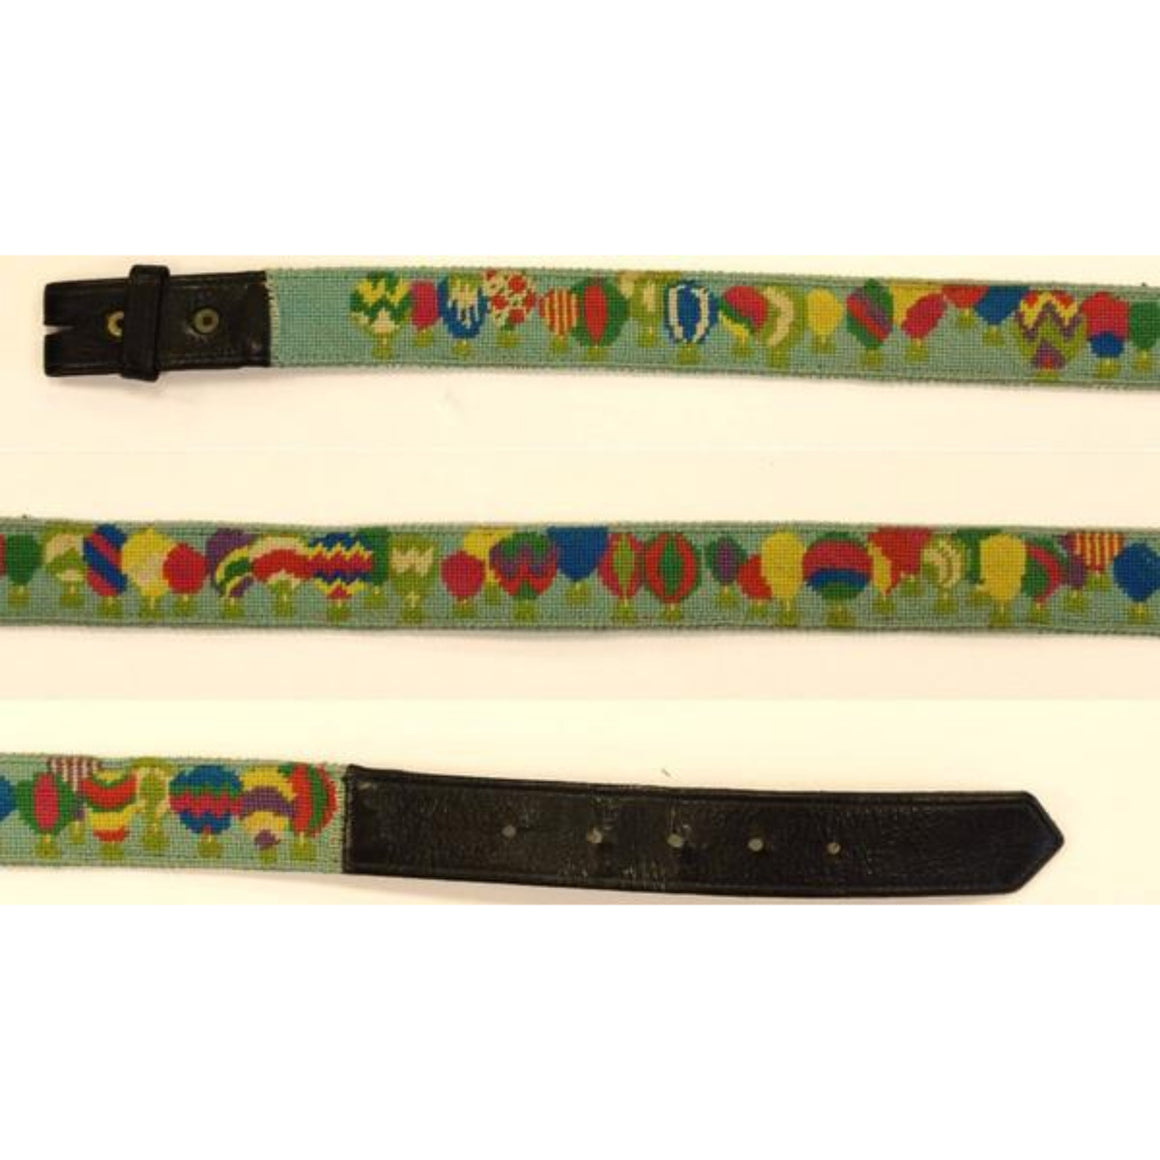 "'Custom Multi-Hot Air Balloon Needlepoint Belt' Sz: 36""W (No Buckle)"